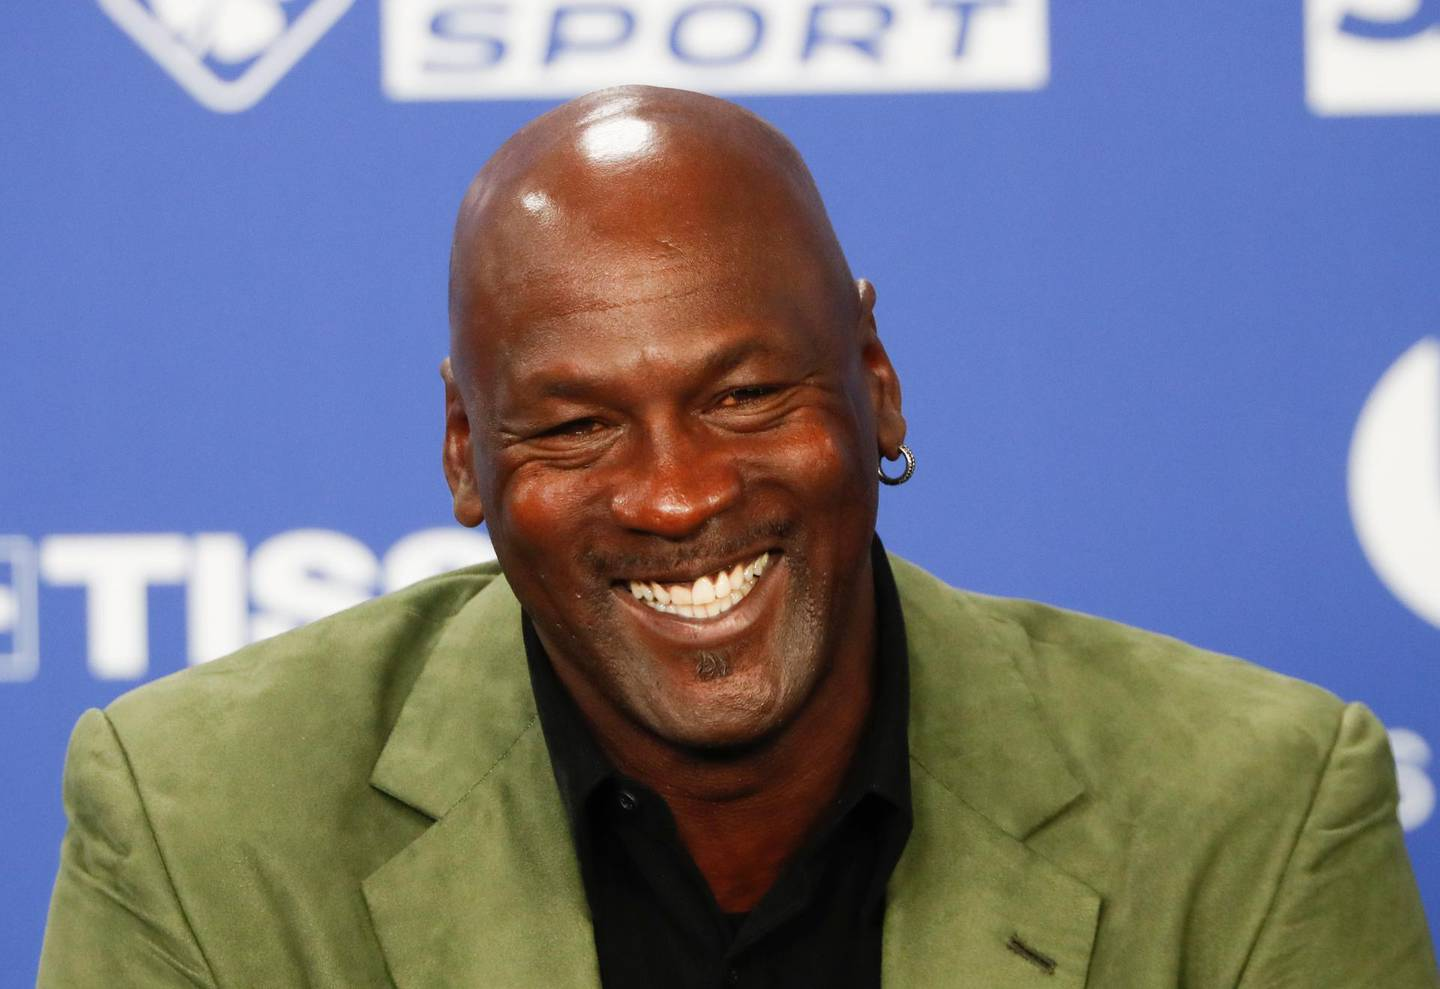 FILE - Basketball legend Michael Jordan speaks during a press conference ahead of an NBA basketball game between the Charlotte Hornets and Milwaukee Bucks in Paris, in this Friday, Jan. 24, 2020, file photo. Jordan is donating $10 million to launch two medical clinics in underserved communities near his hometown in North Carolina, a regional health care system announced Monday, Feb. 15 2021. (AP Photo/Thibault Camus, File)